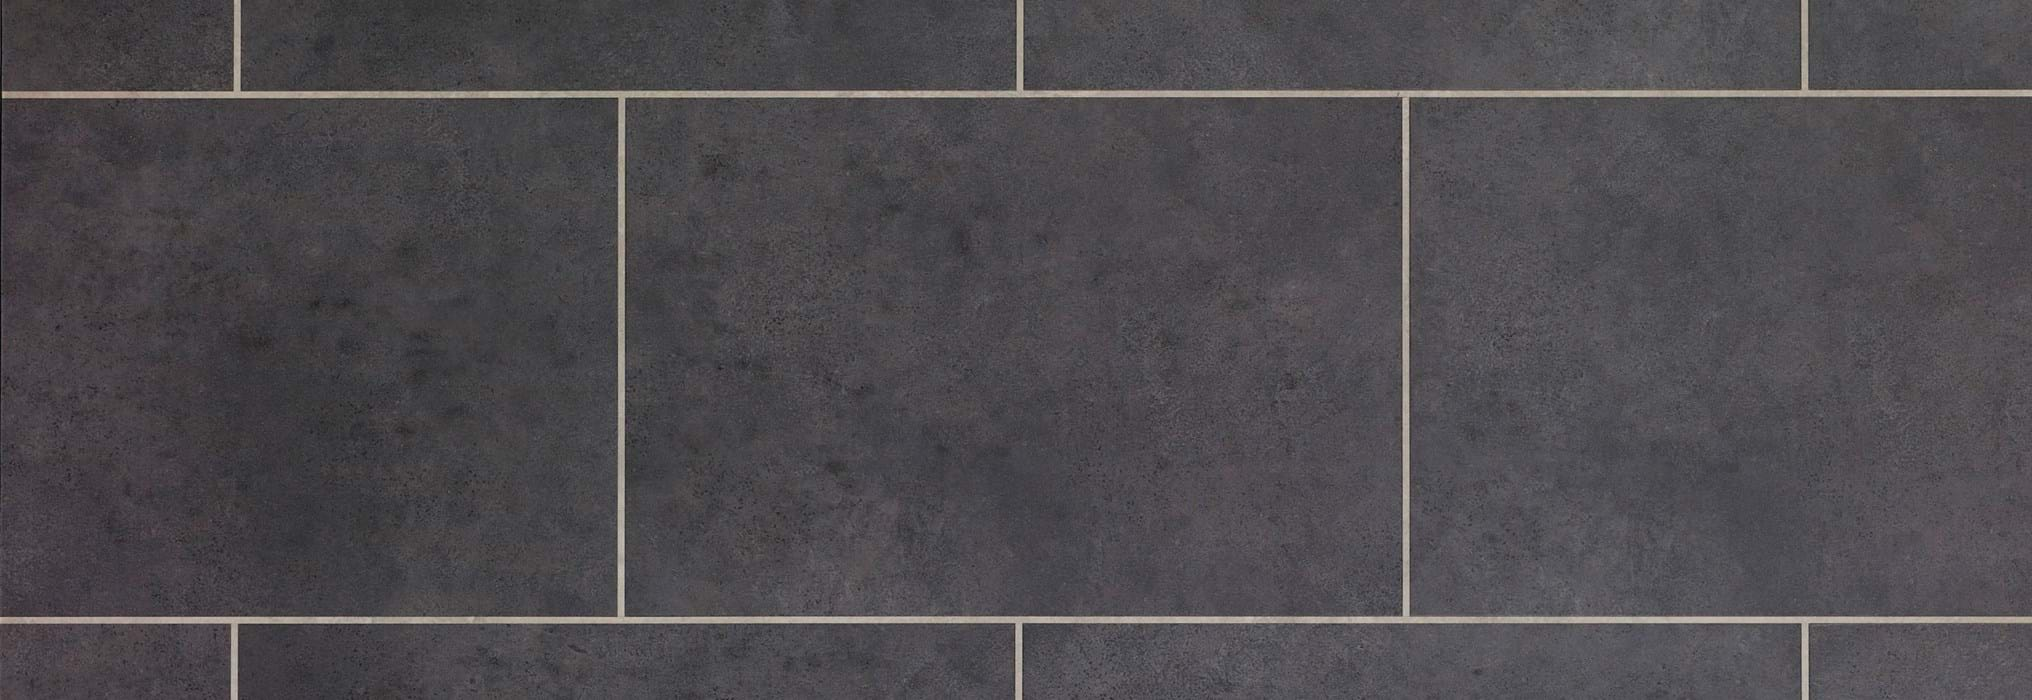 Amtico International: Ceramic Flint - AM5S2594